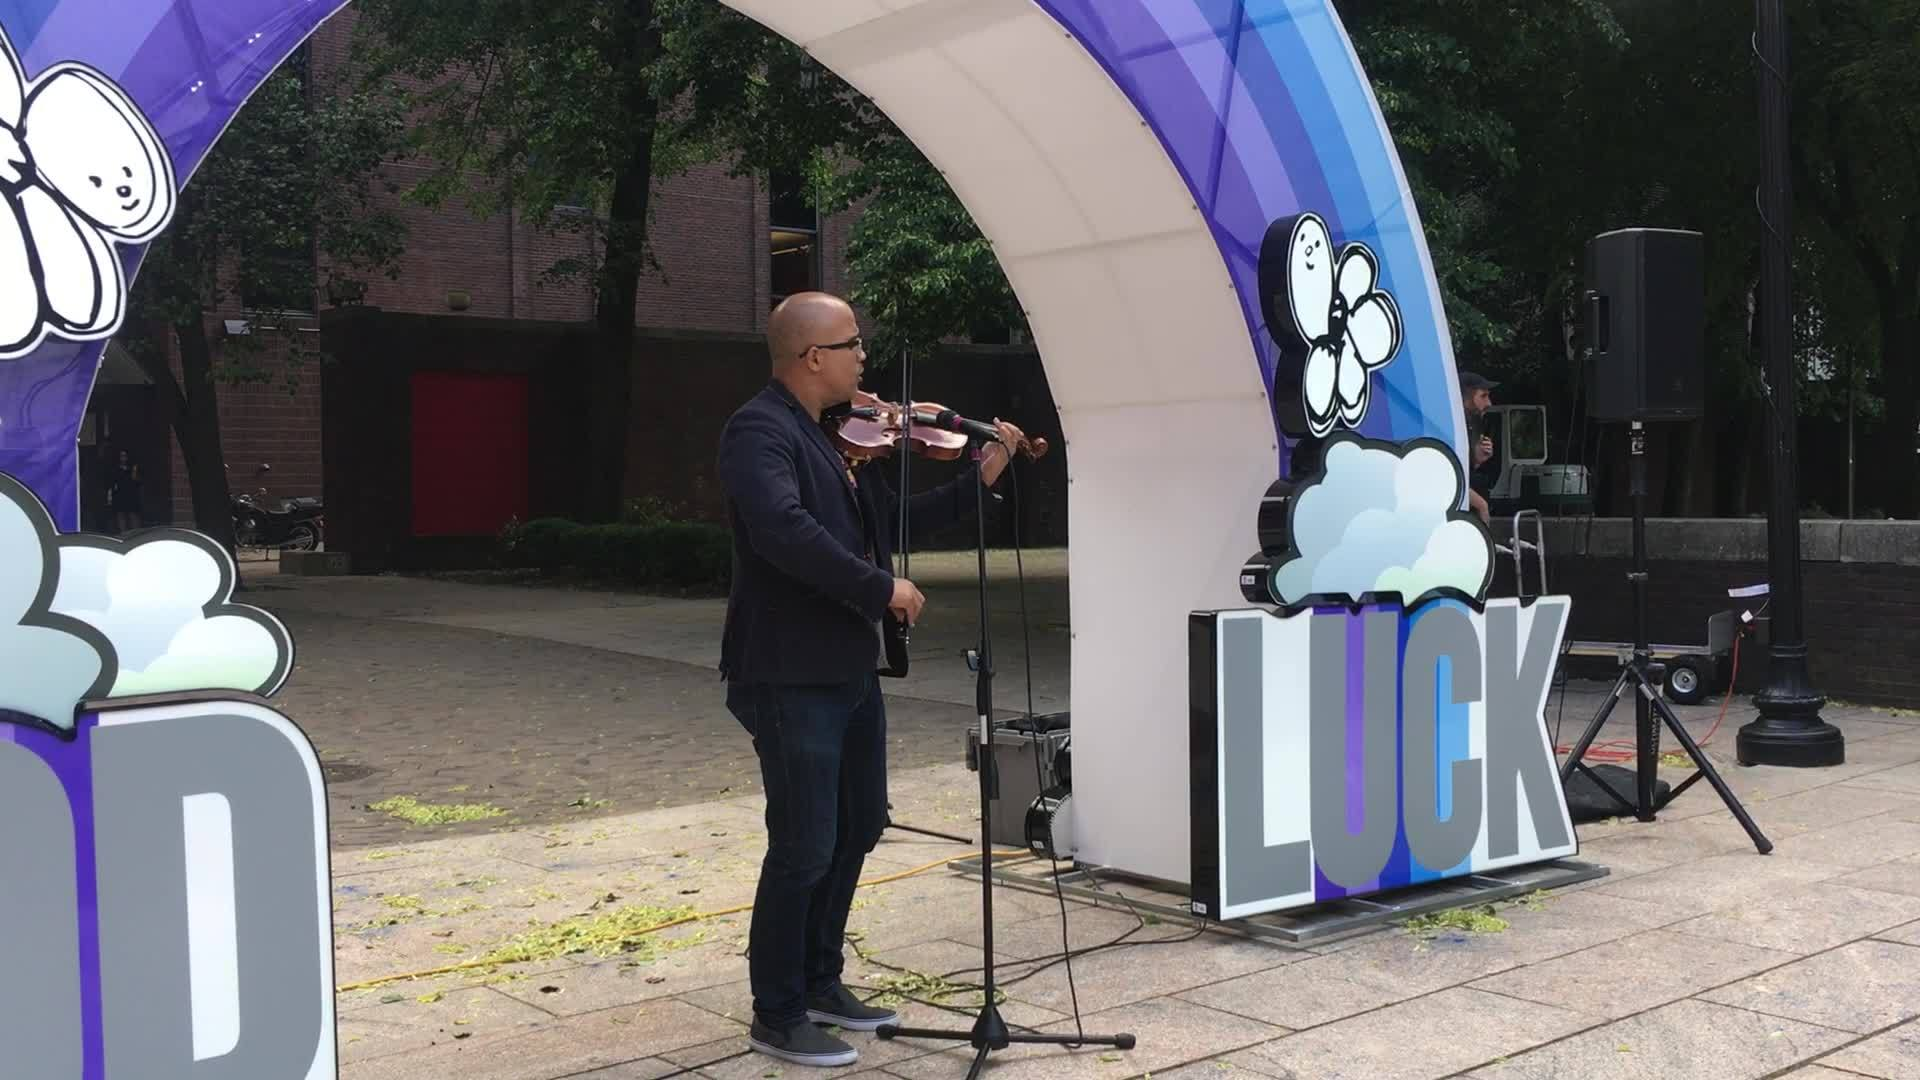 Video Now: PVD Fest kicks off in Providence